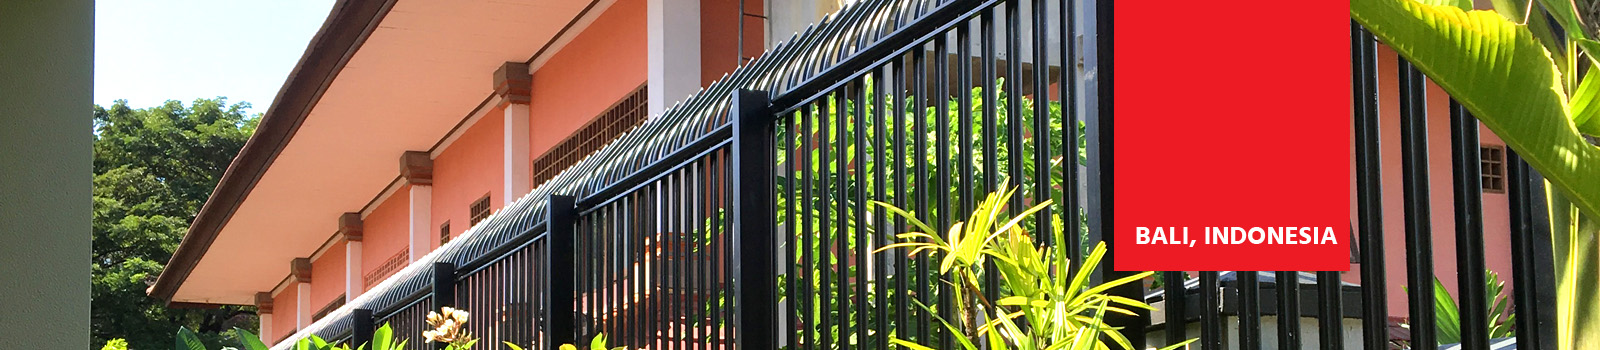 Case Study - Kane Constructions | Perimeter Security Fence